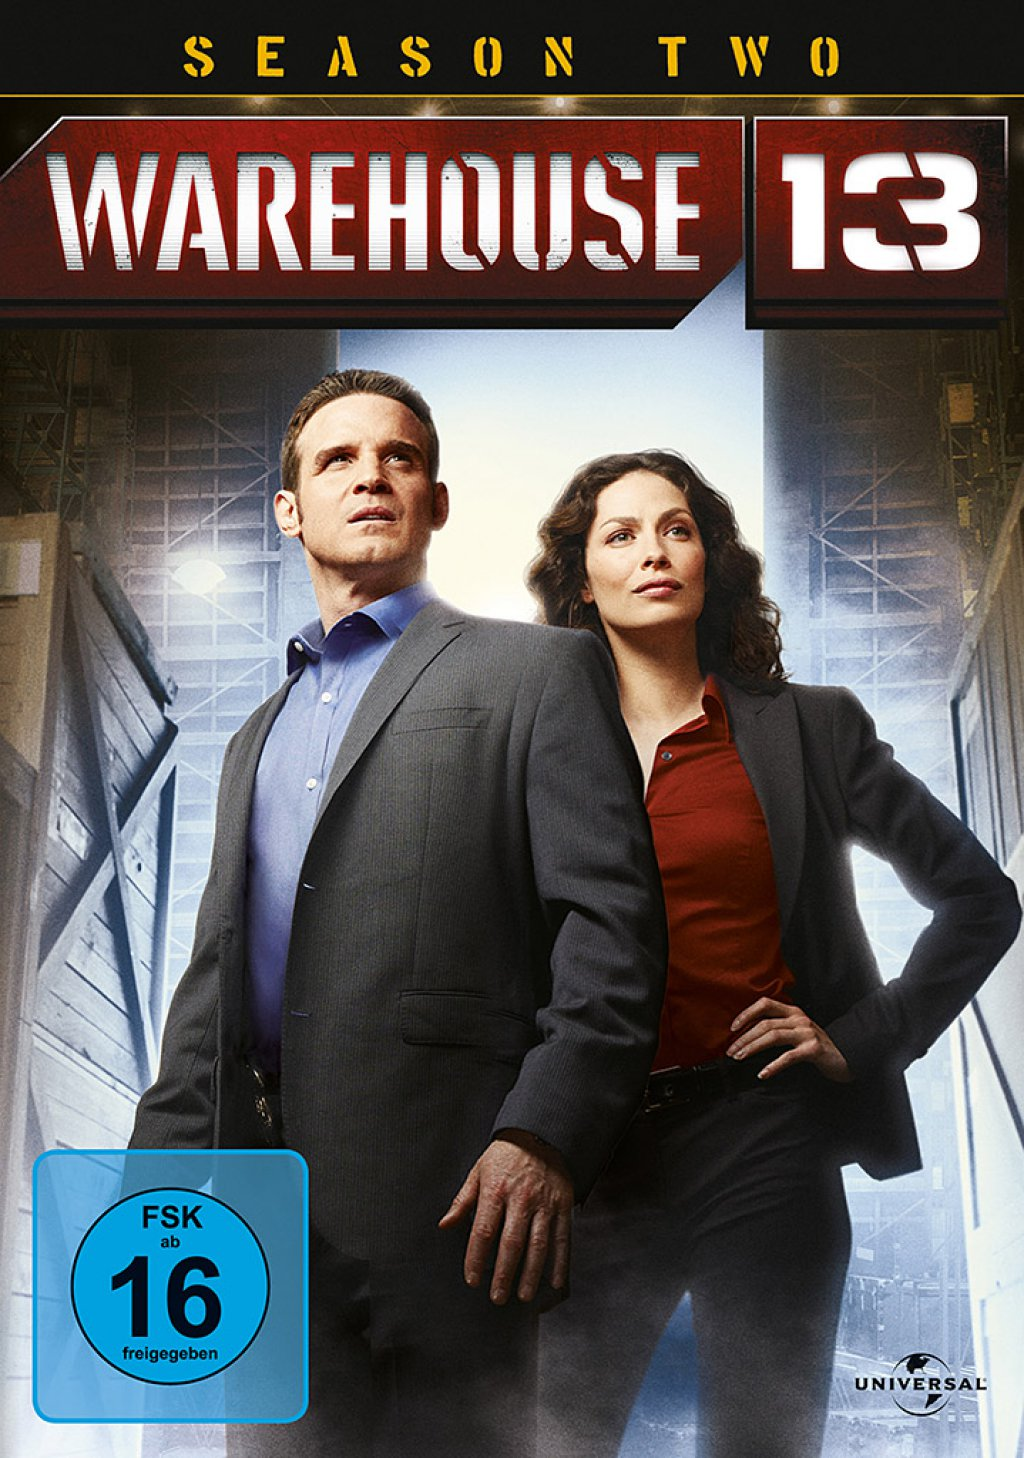 Warehouse 13 - Season 2 (DVD)